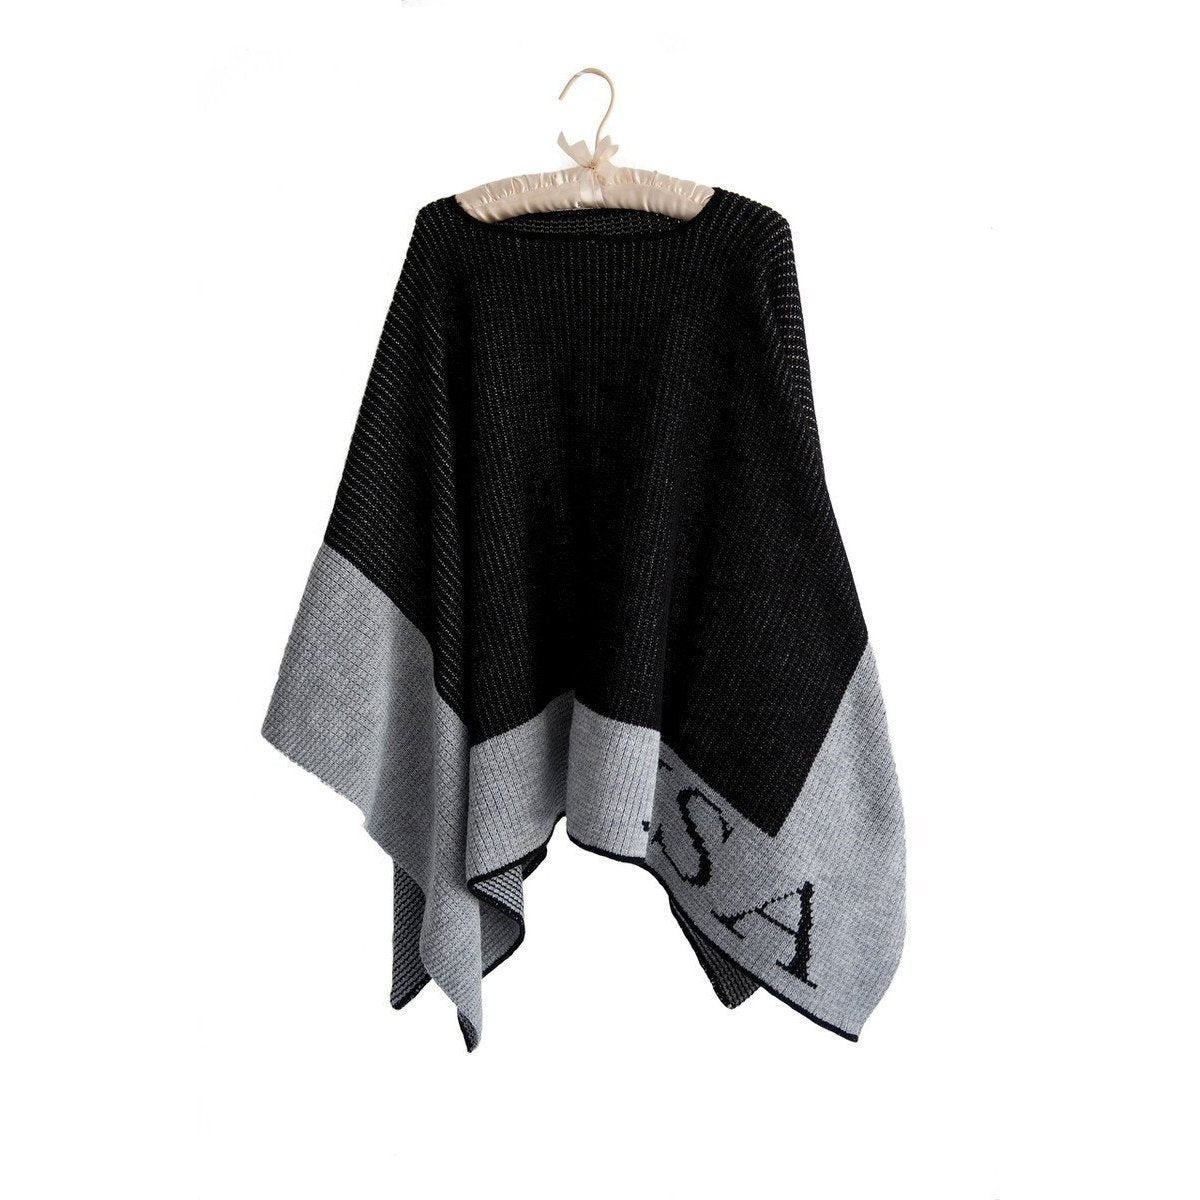 Single Border Personalized Blanket Poncho-Poncho-Default-Jack and Jill Boutique